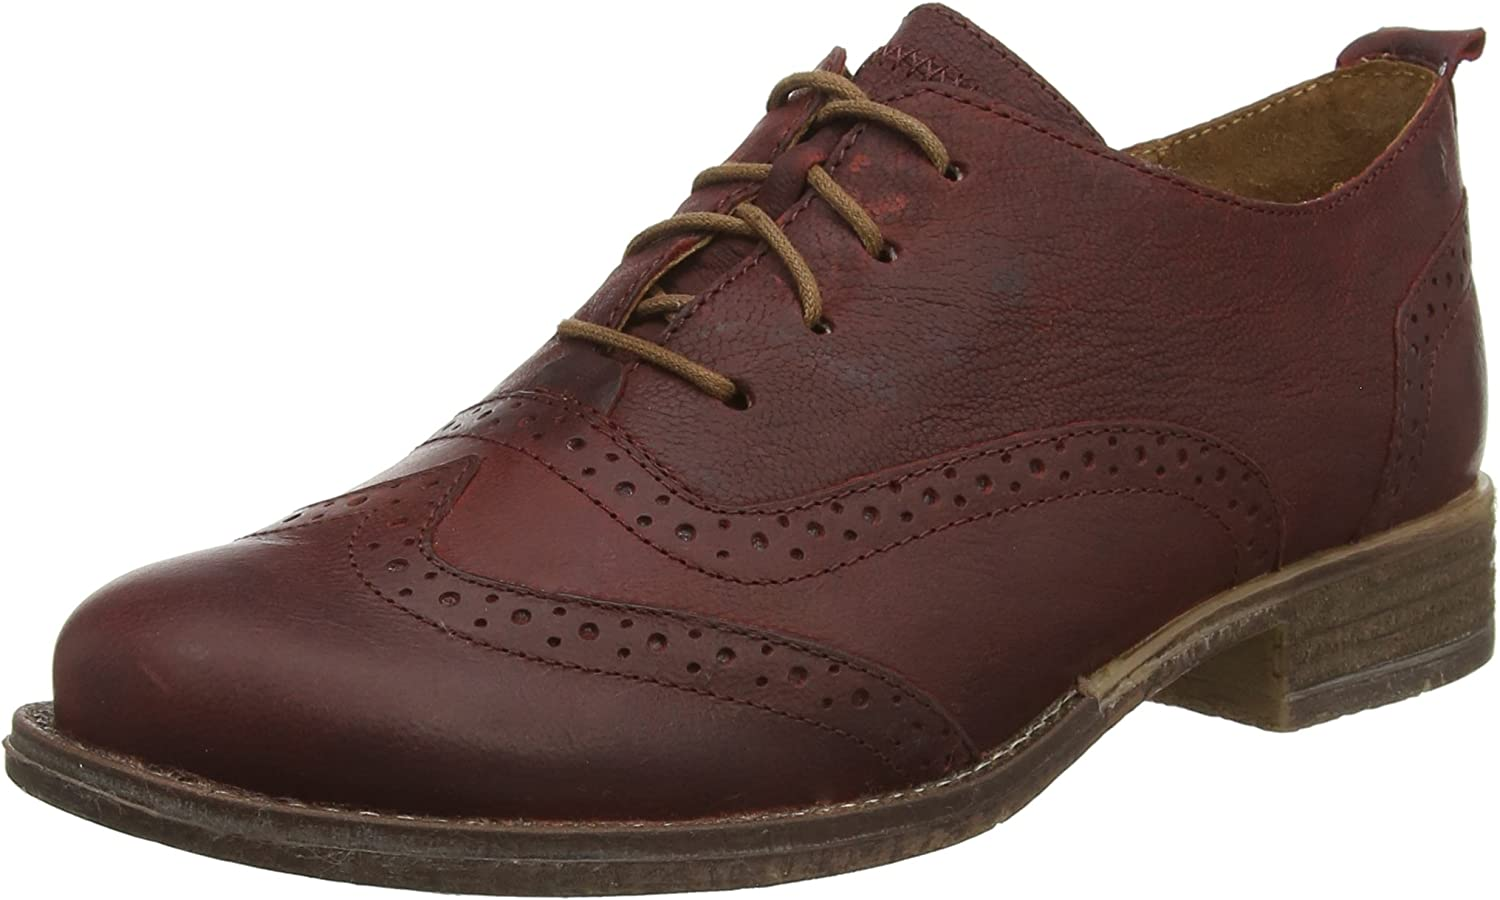 Josef Seibel Sienna 89 Womens Brogue Lace up Comfort shoes